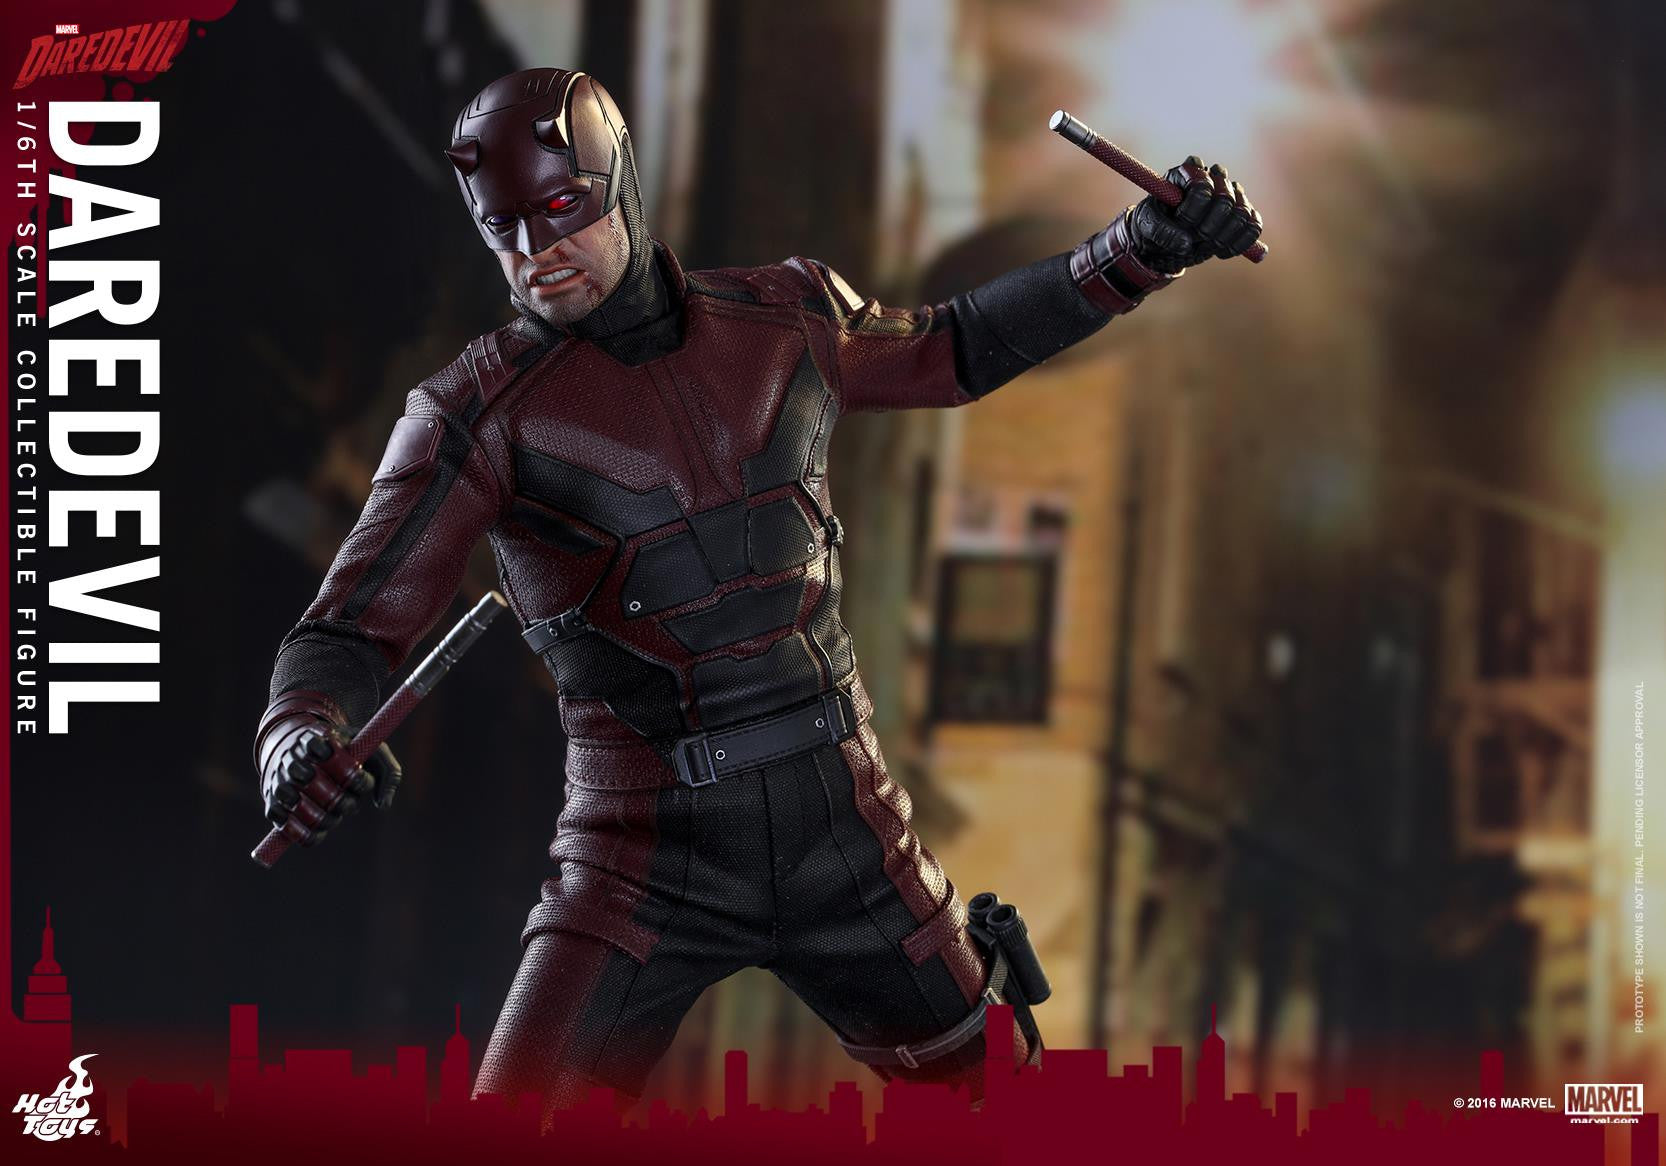 Hot Toys - TMS003 - Marvel's Daredevil - Daredevil - Marvelous Toys - 7